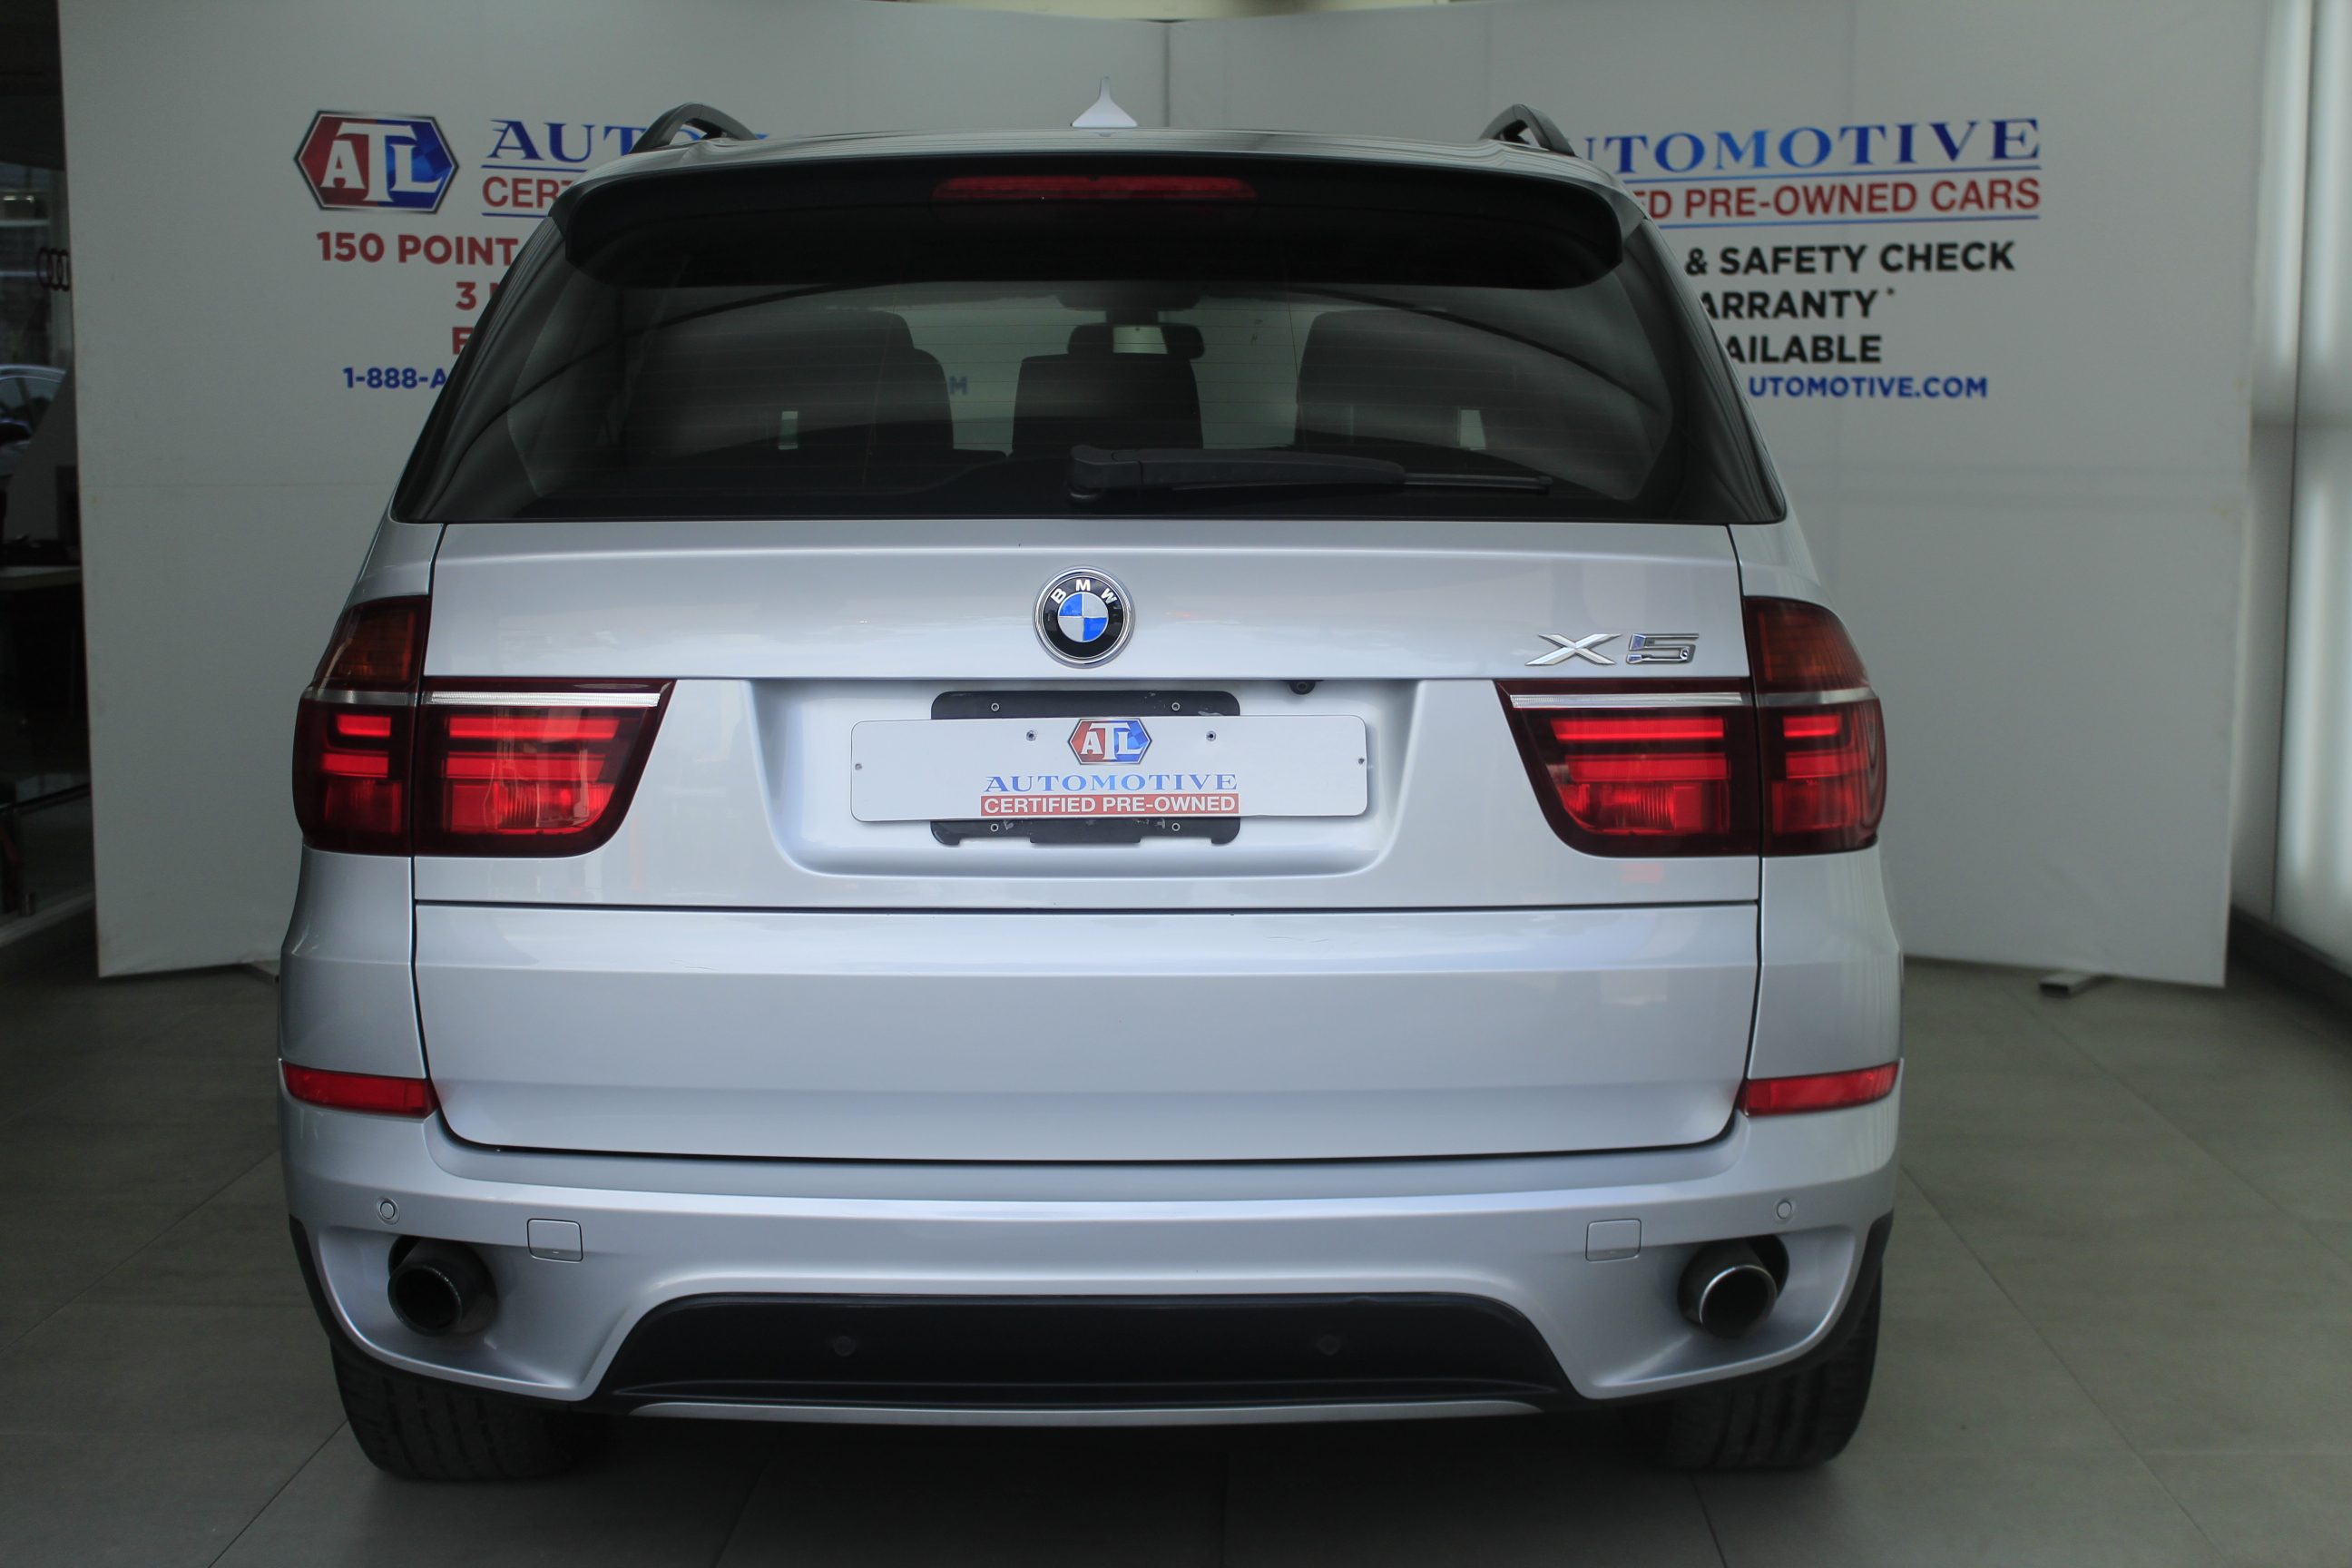 lease car a pre portal uk co swap owned hire leasing links bmw of and cfm contract transfer the exchange used image in